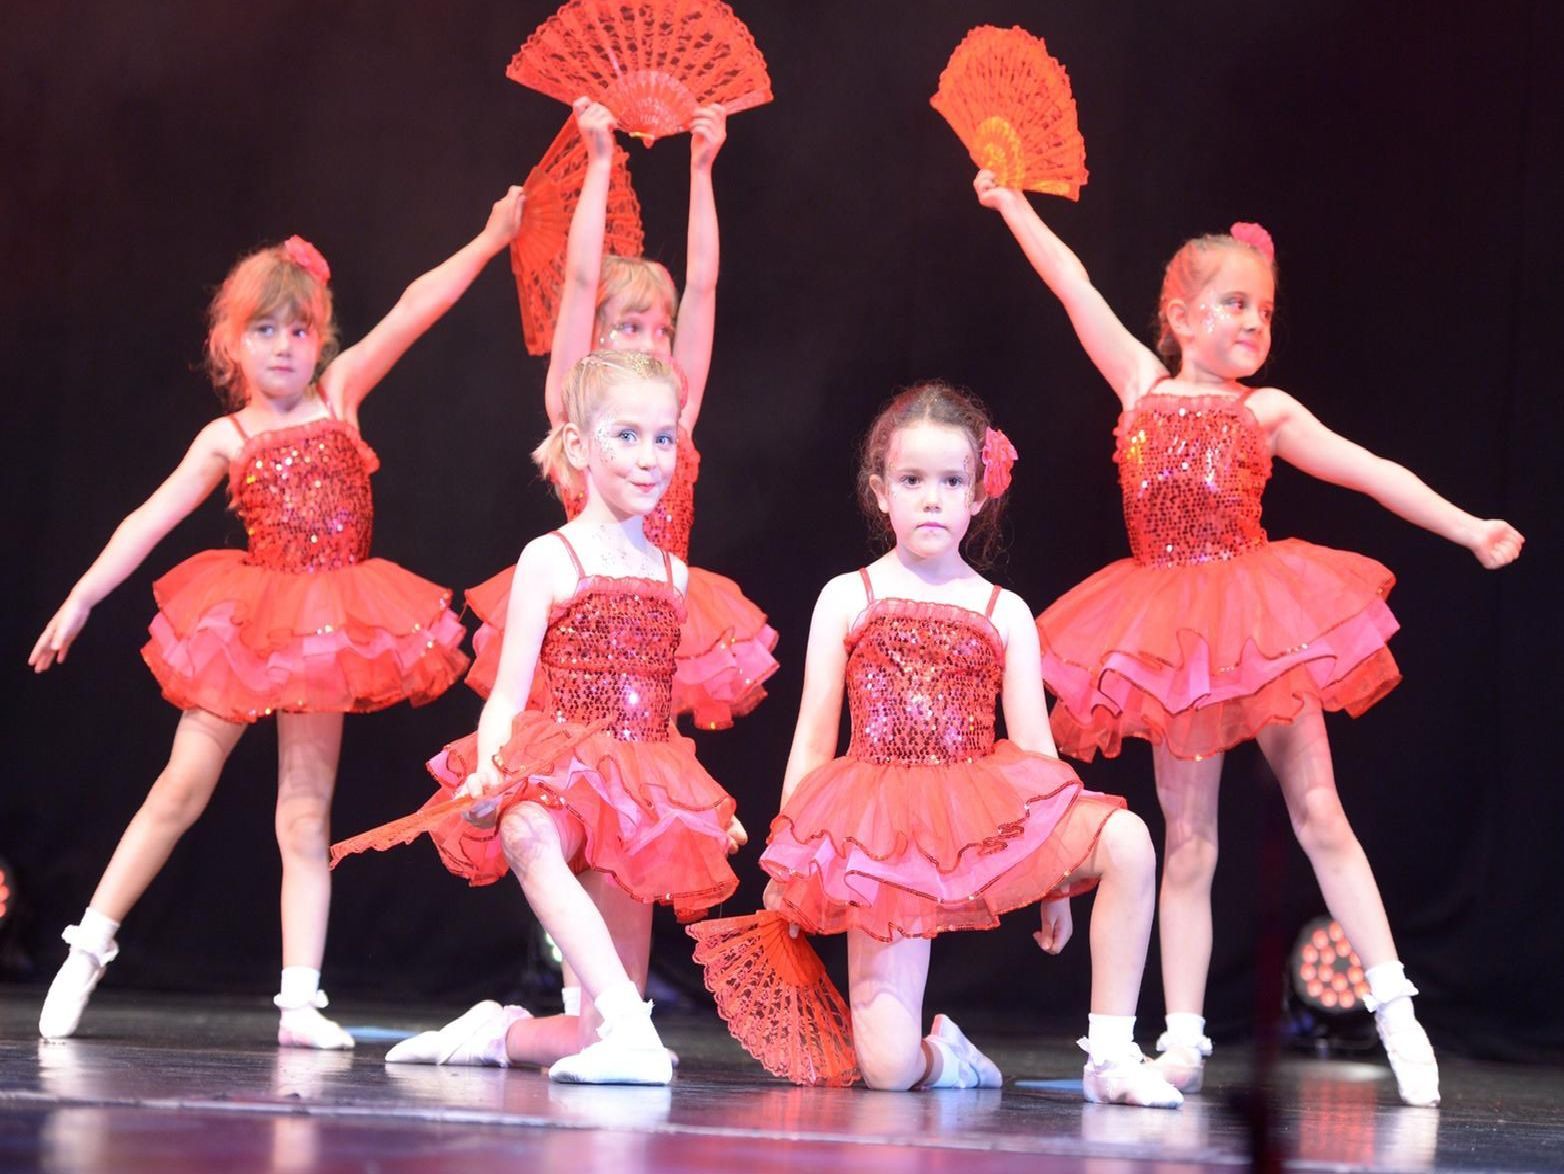 The Greatest Show Around the World was performed by the 4 to 7 year olds of Dancecatz Academy at Ferneham Hall.